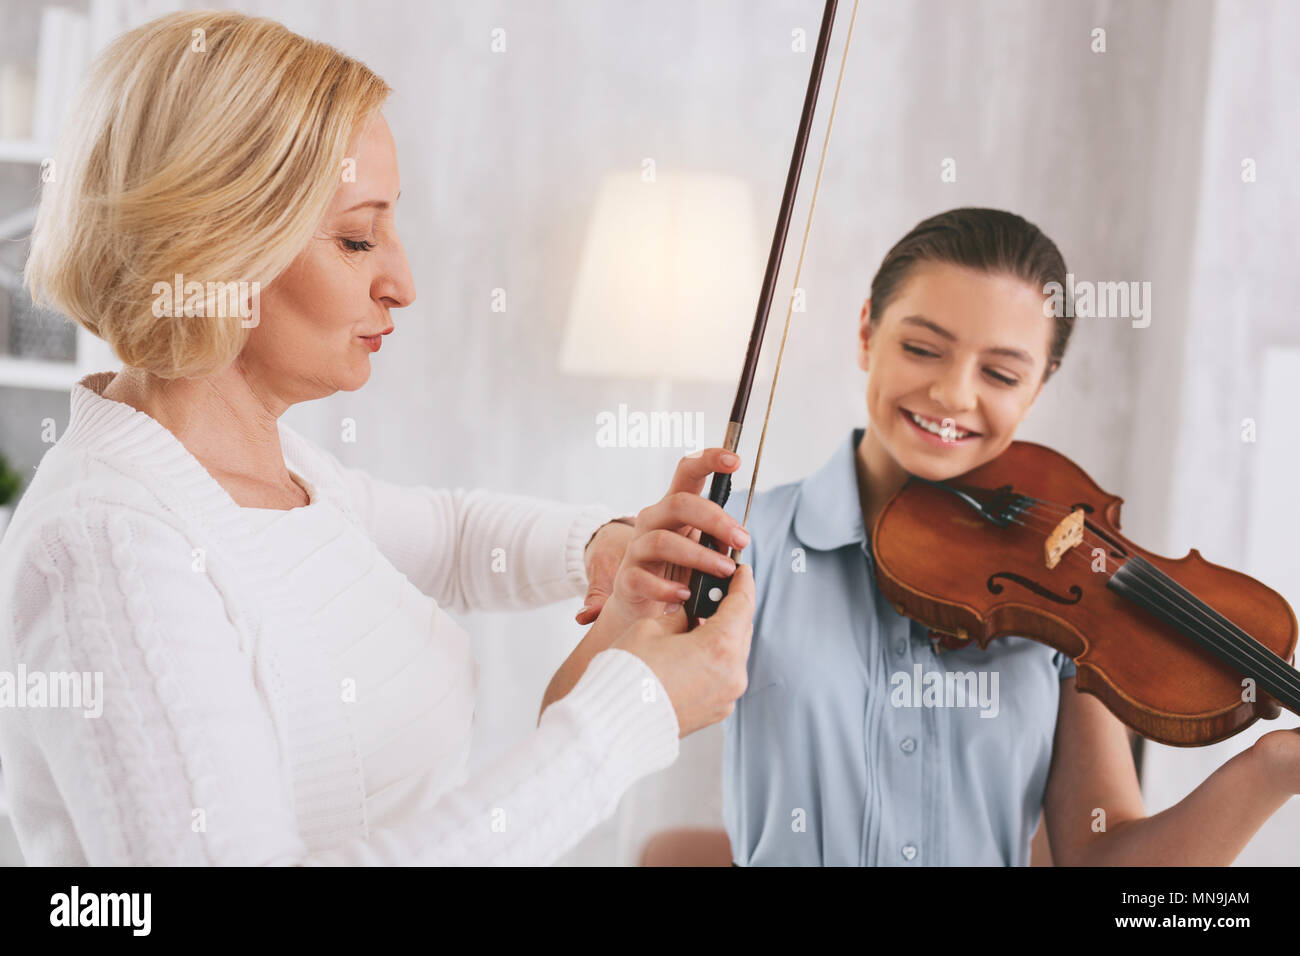 Serious tutor demonstrating the way of playing - Stock Image